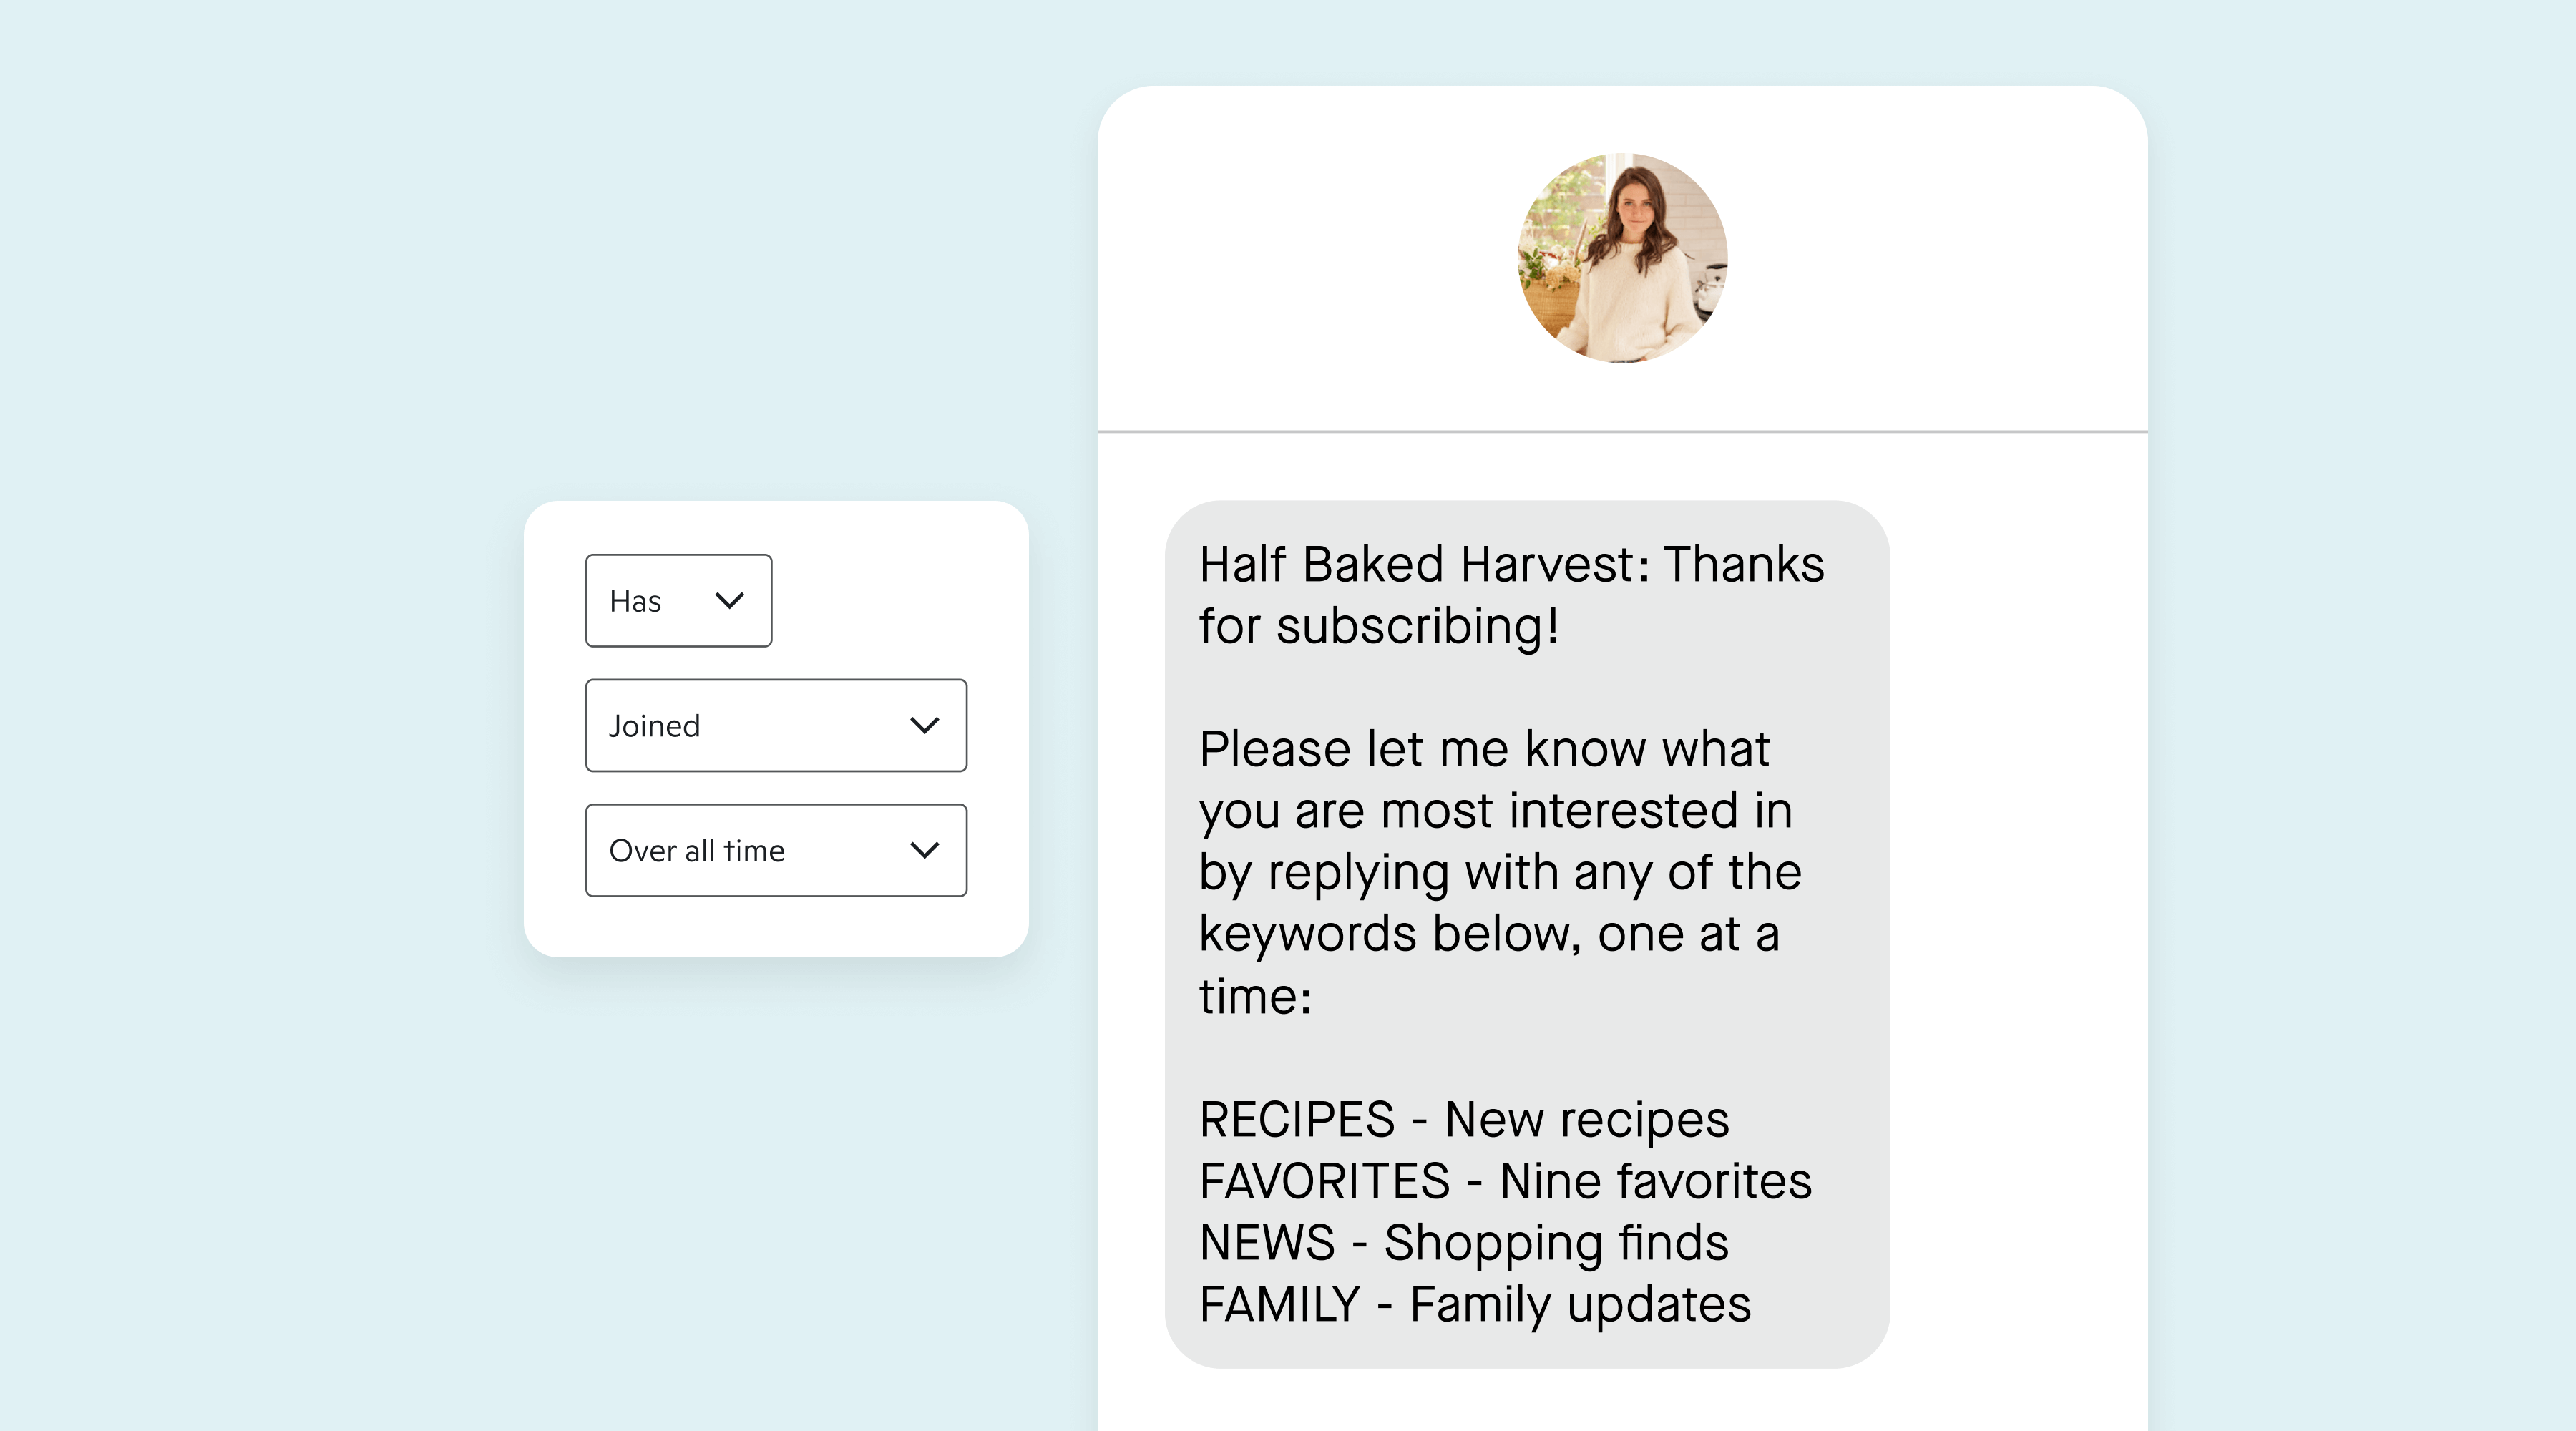 Triggered welcome message